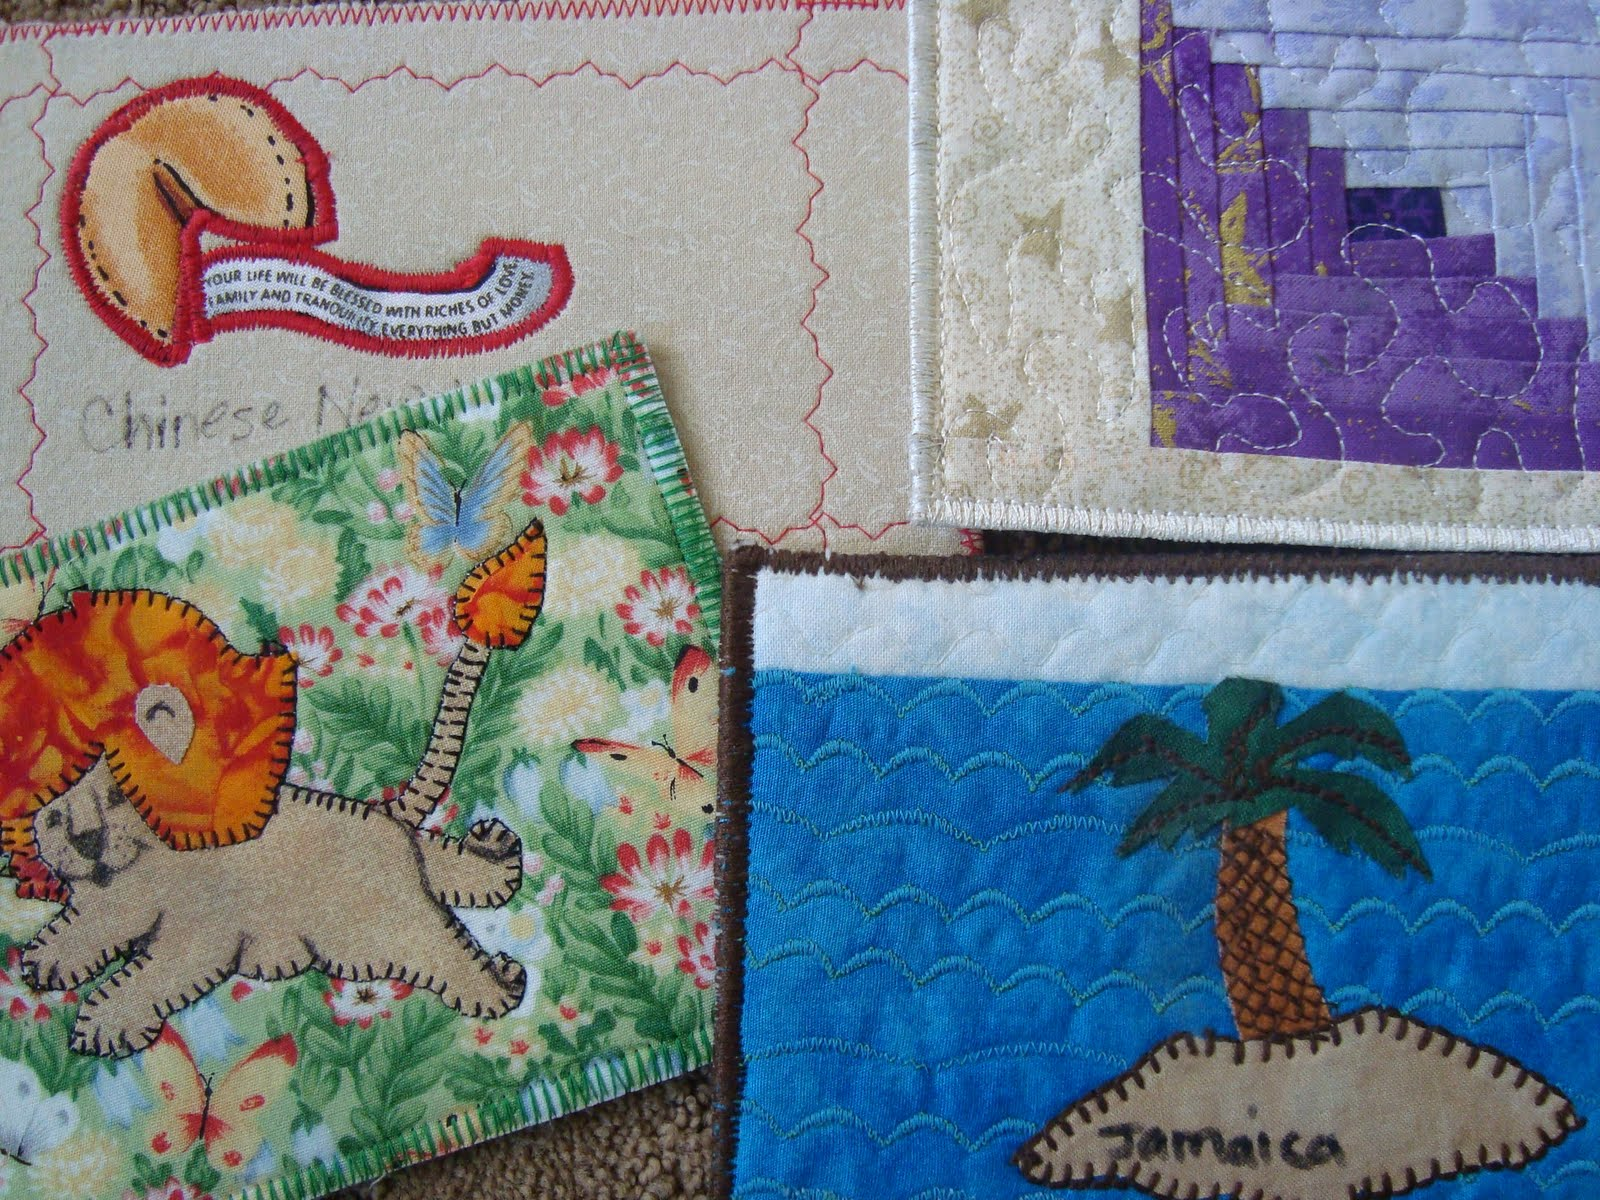 diy postcards - use ufo quilt blocks